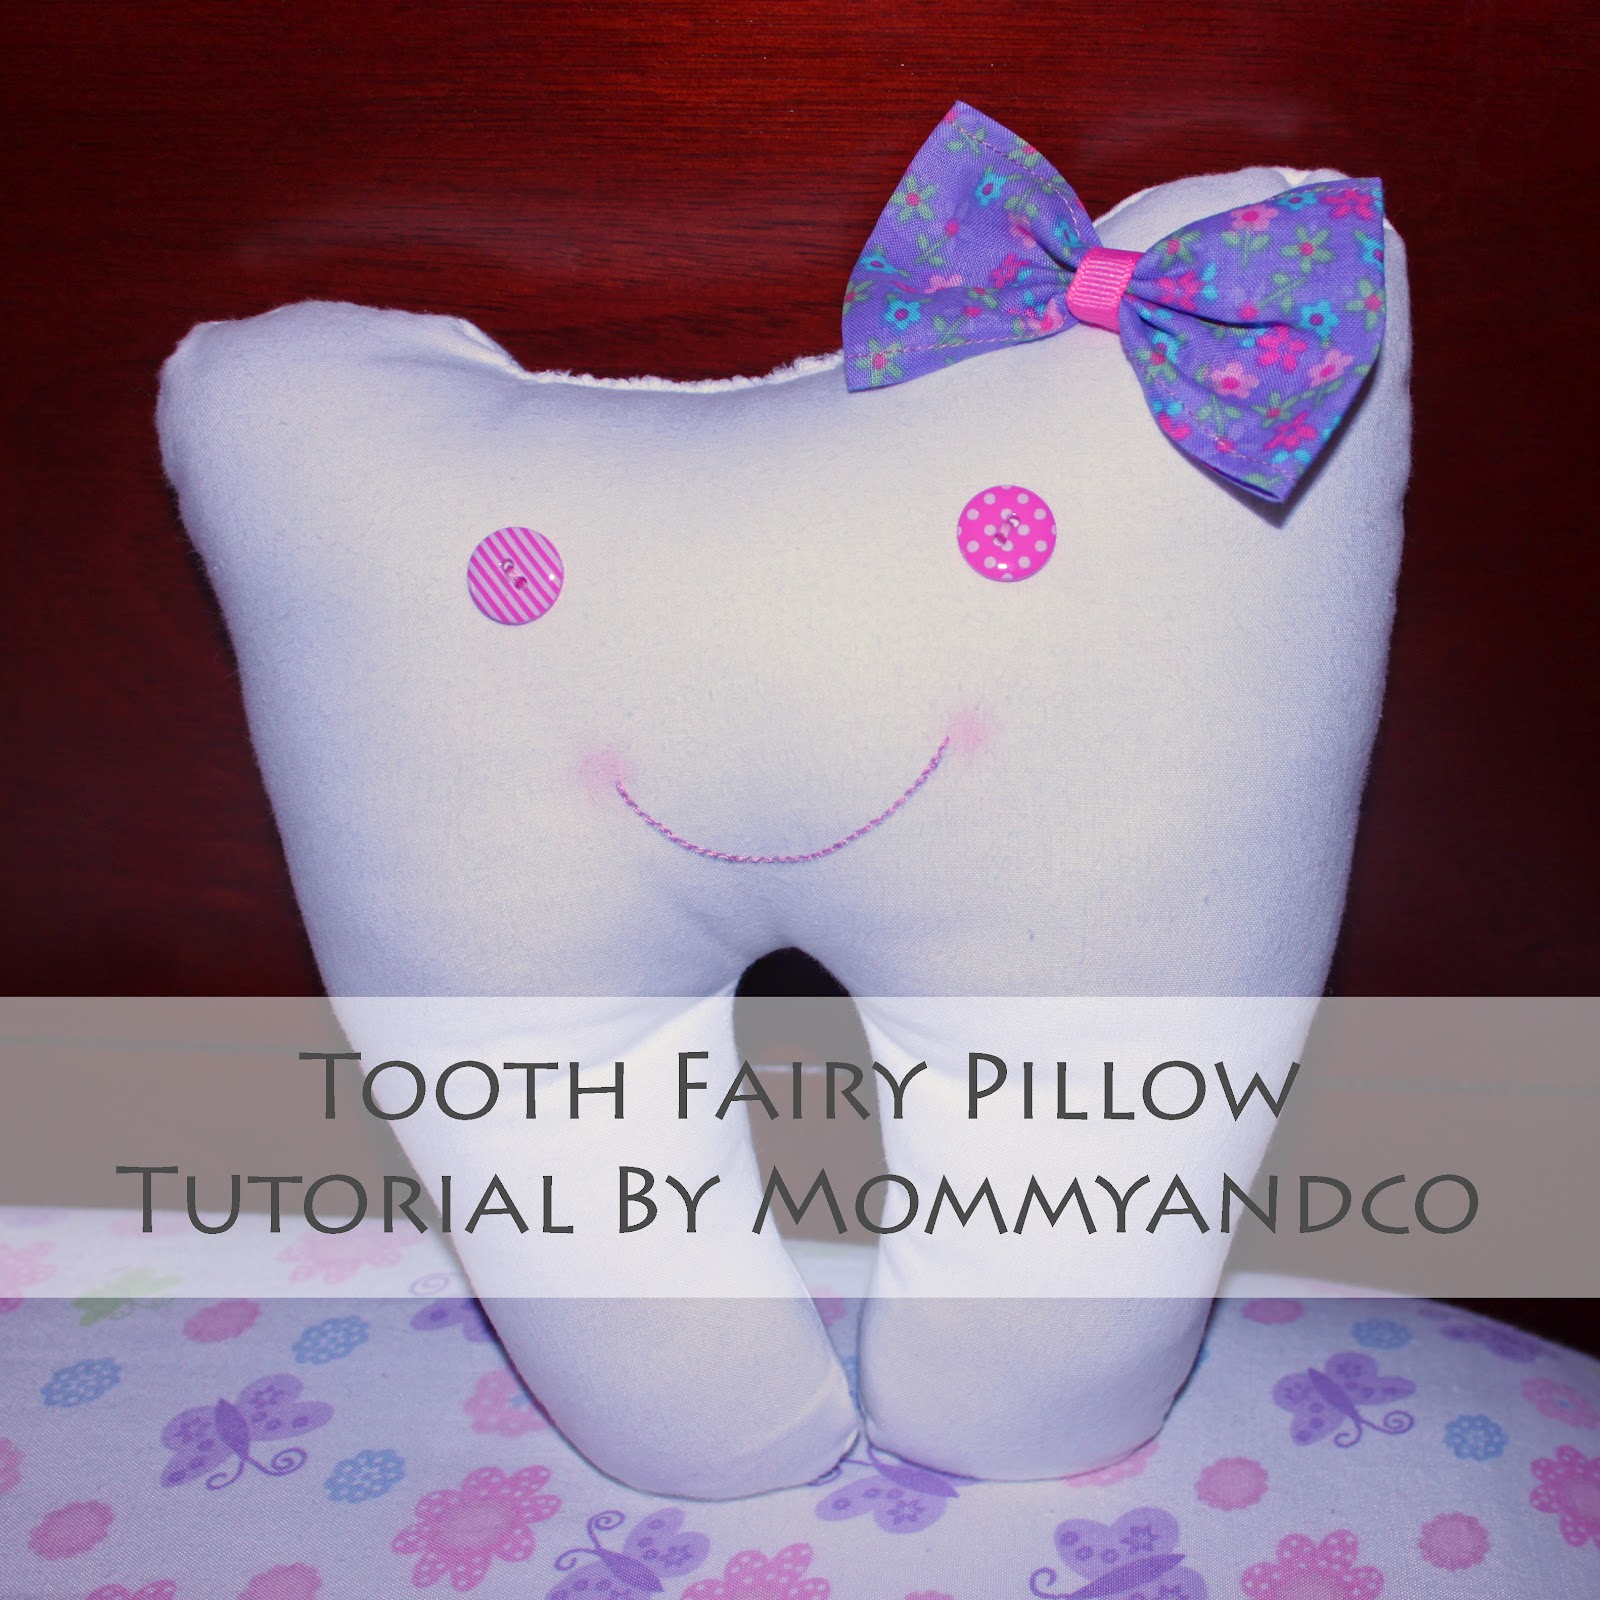 Mommyandco: Tooth Fairy Pillow Tutorial